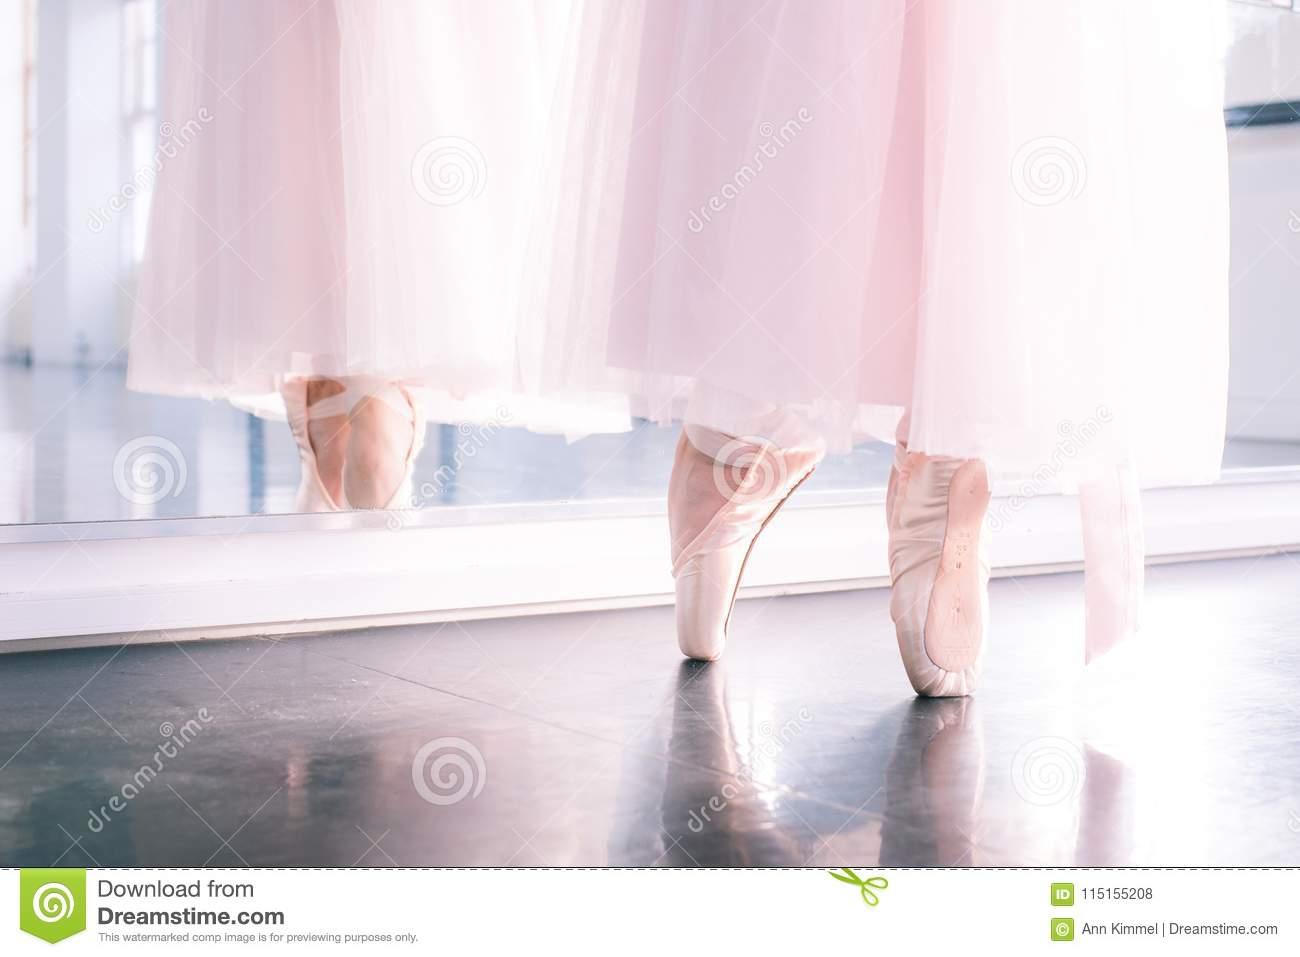 Ballerina`s feet in pointe shoes and pink airy tutu skirt reflecte